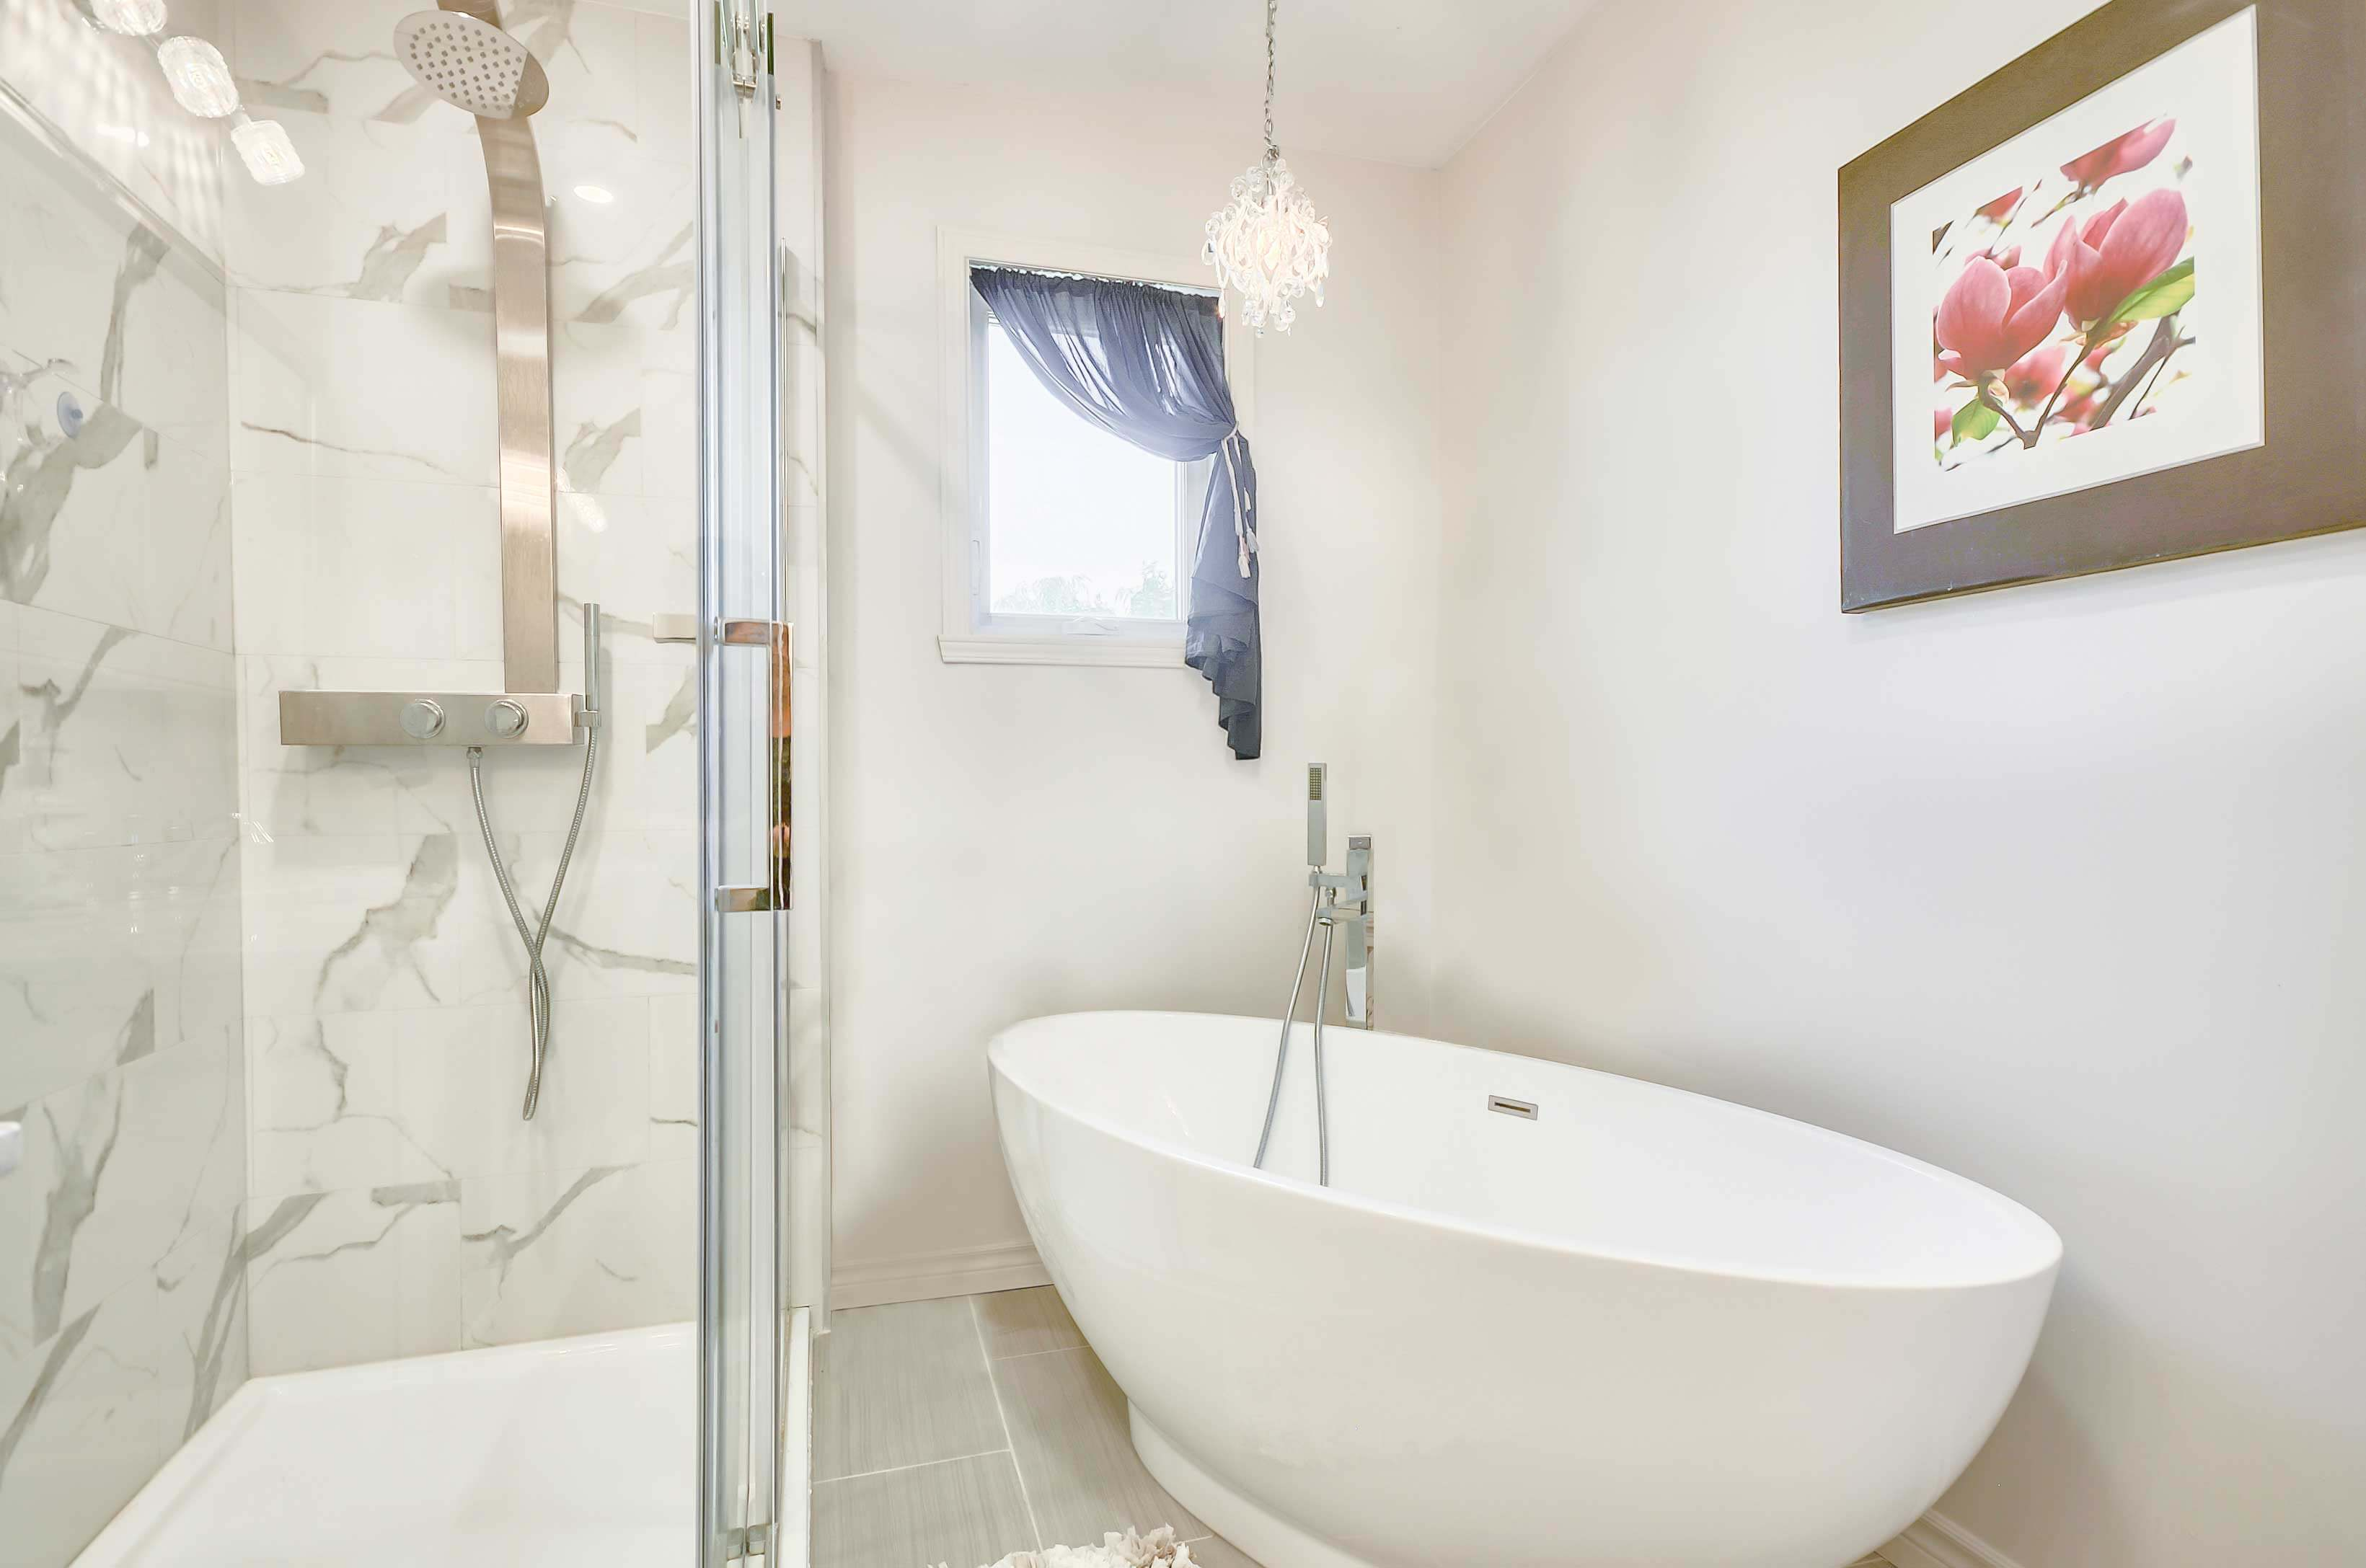 classic bathroom newly remodeled with a white freestanding bath and a glass shower